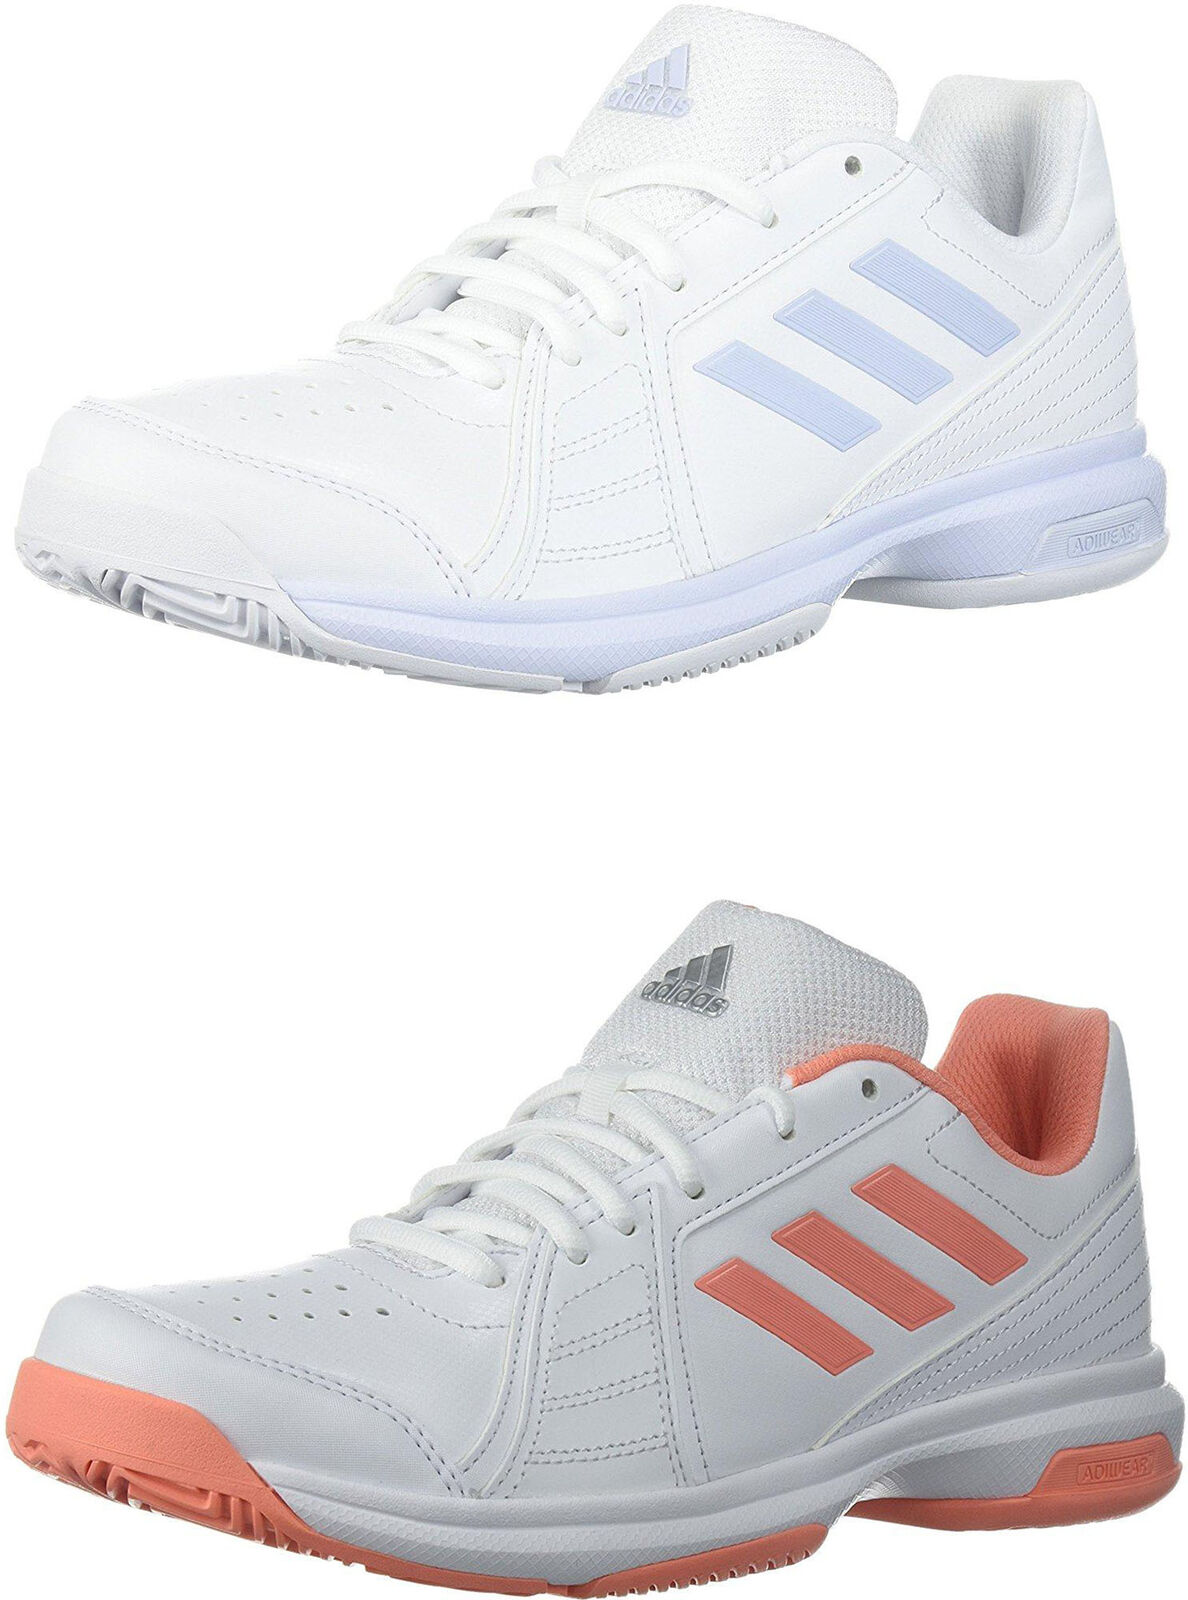 Aspire Women's Colors Shoes Tennis Ebay 2 Adidas 57wdqR5